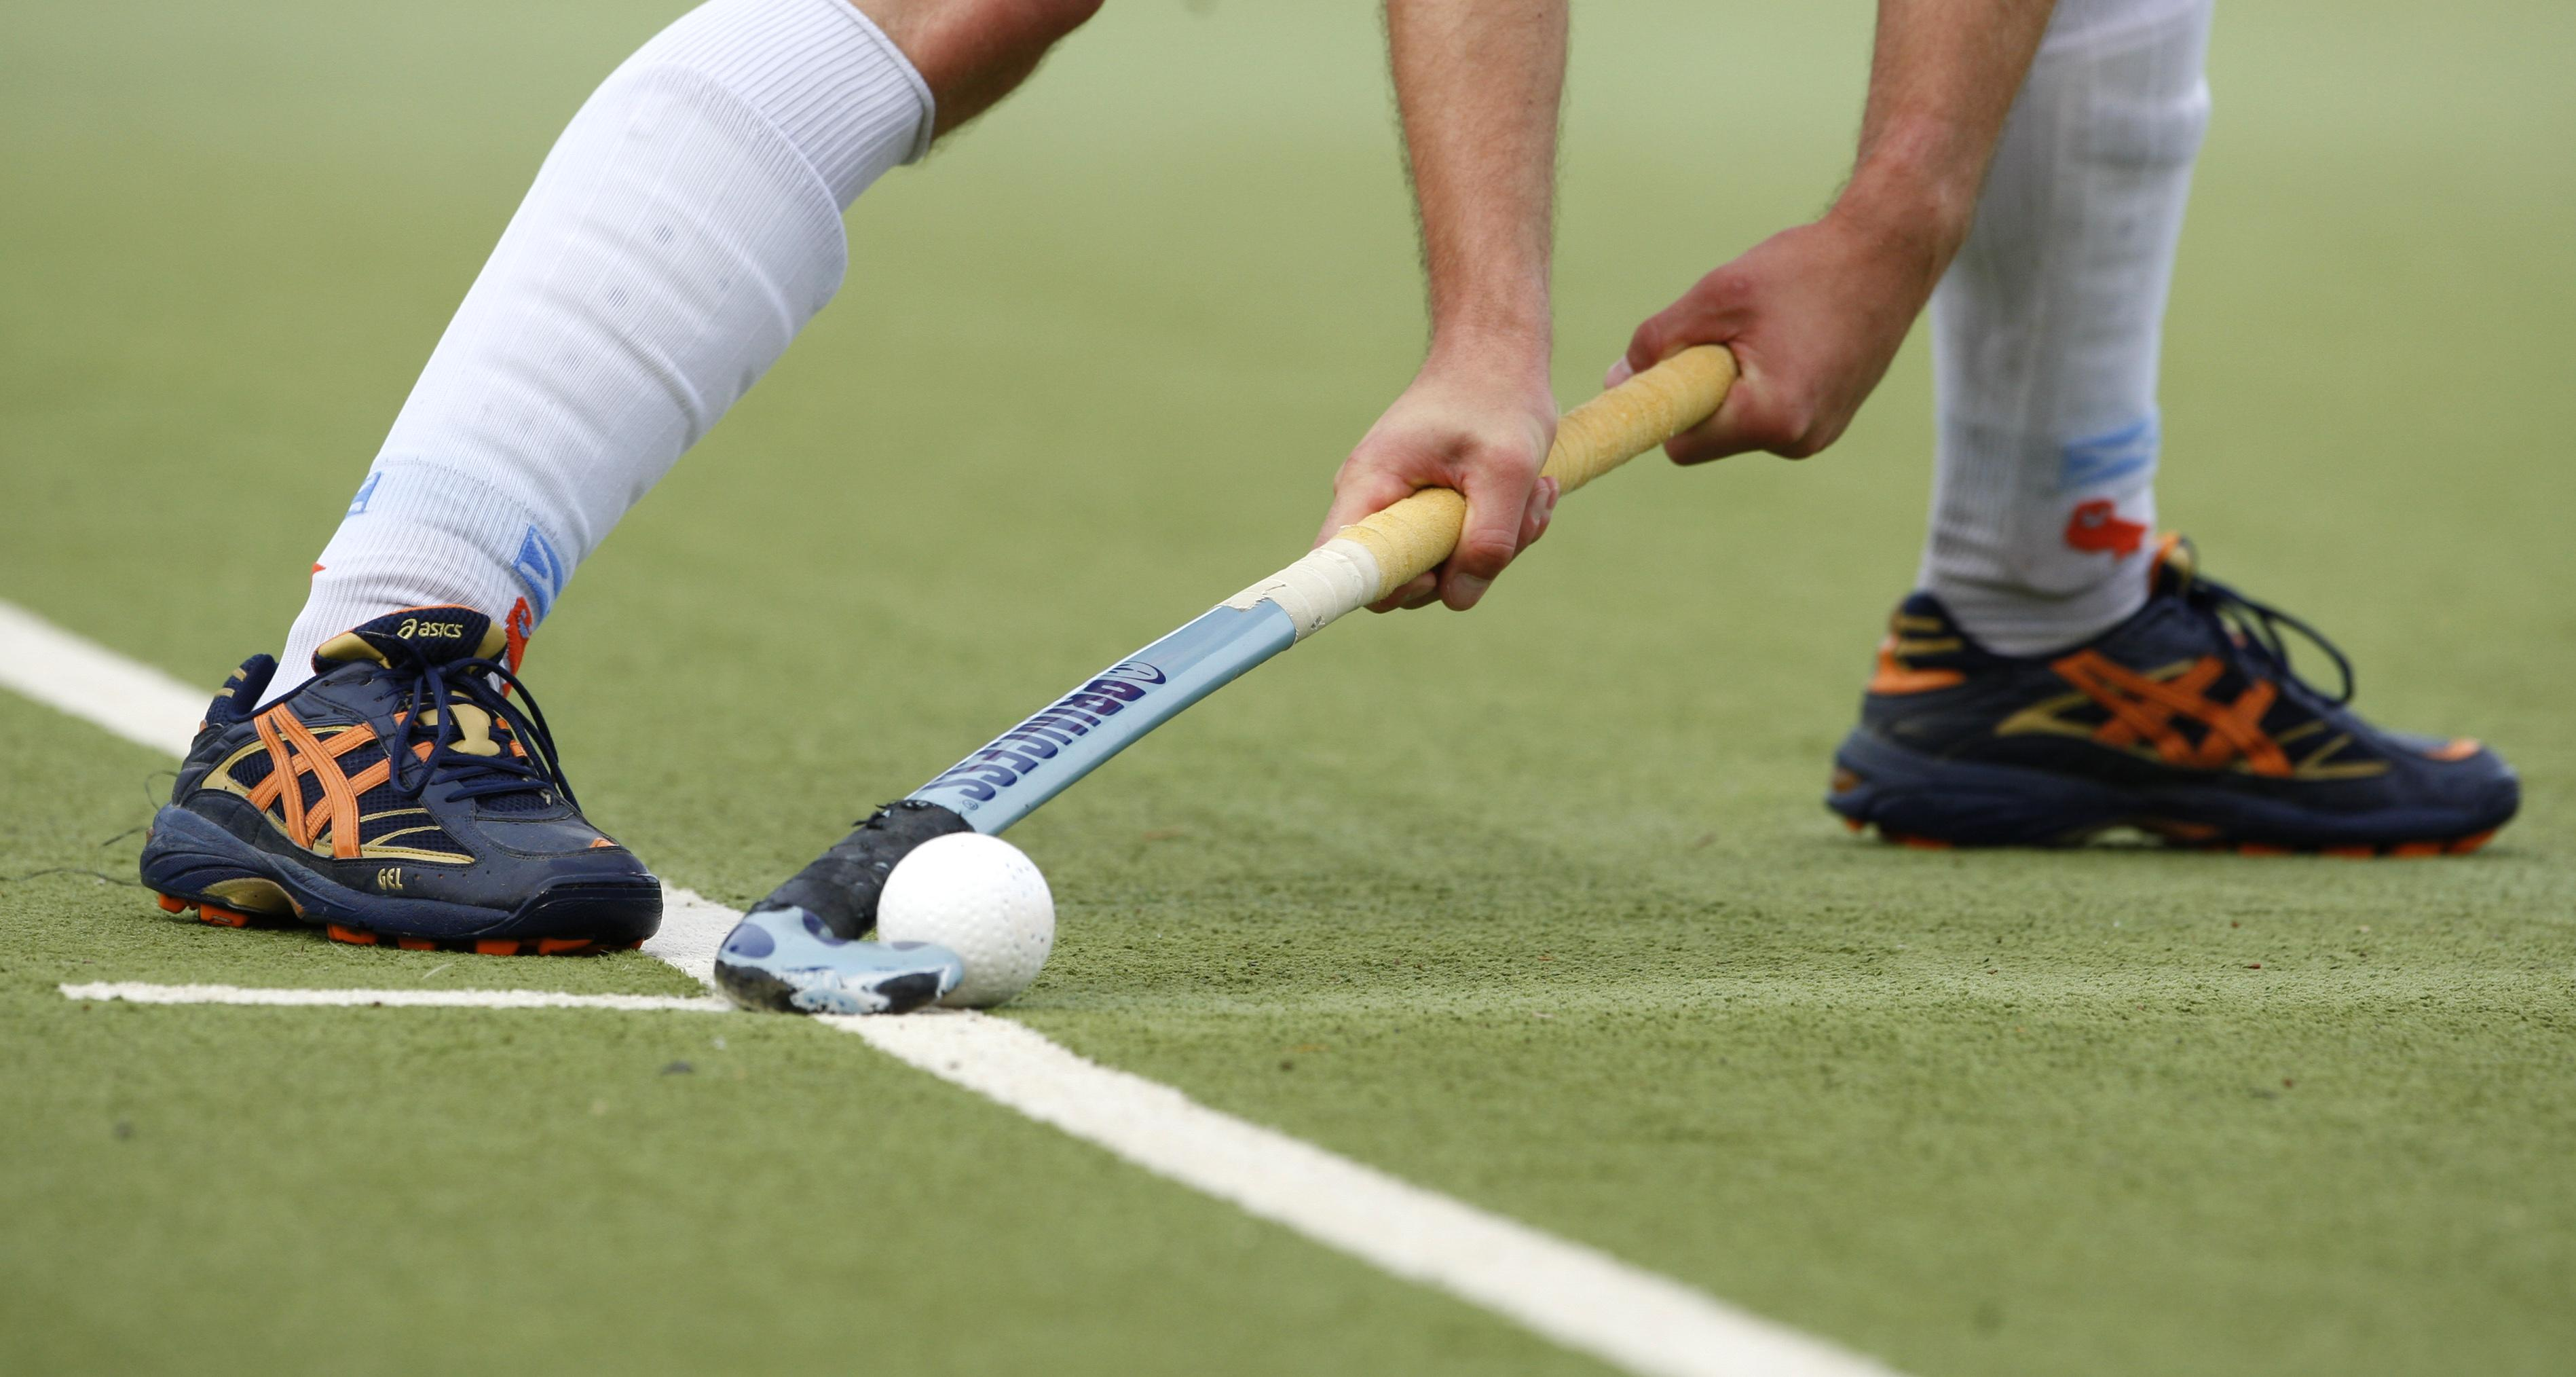 Hockeyers Bloemendaal naar finale Euro Hockey League